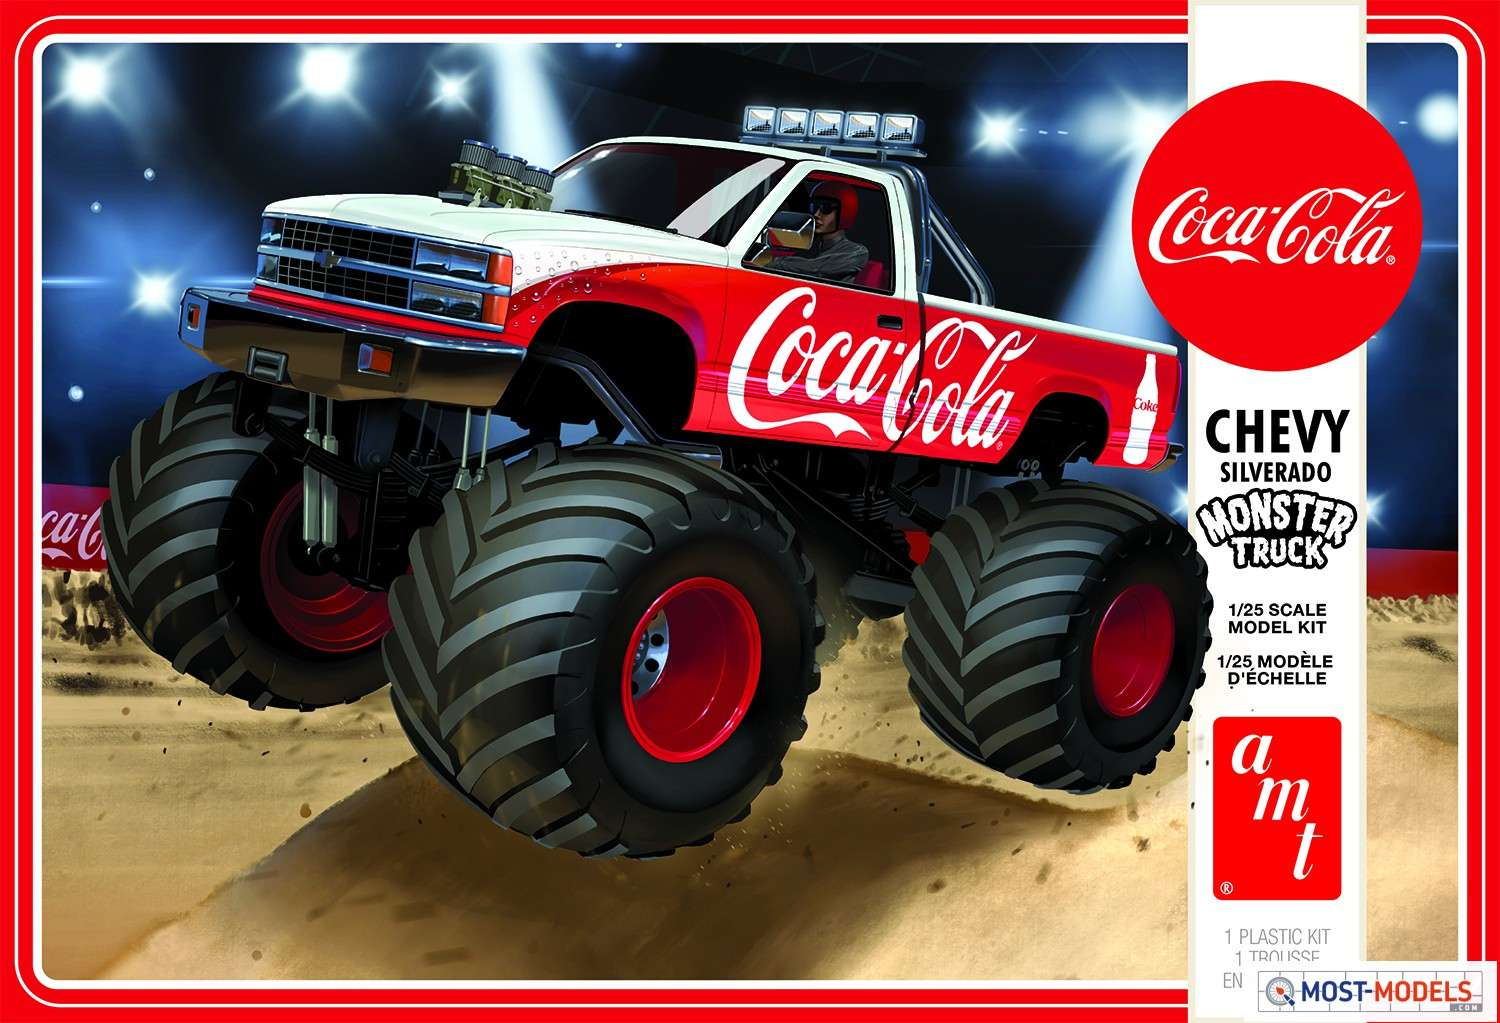 AMT1184M-12-Chevy-Silverado-Monster-Truck-Coca-cola-packaging-Lid-1